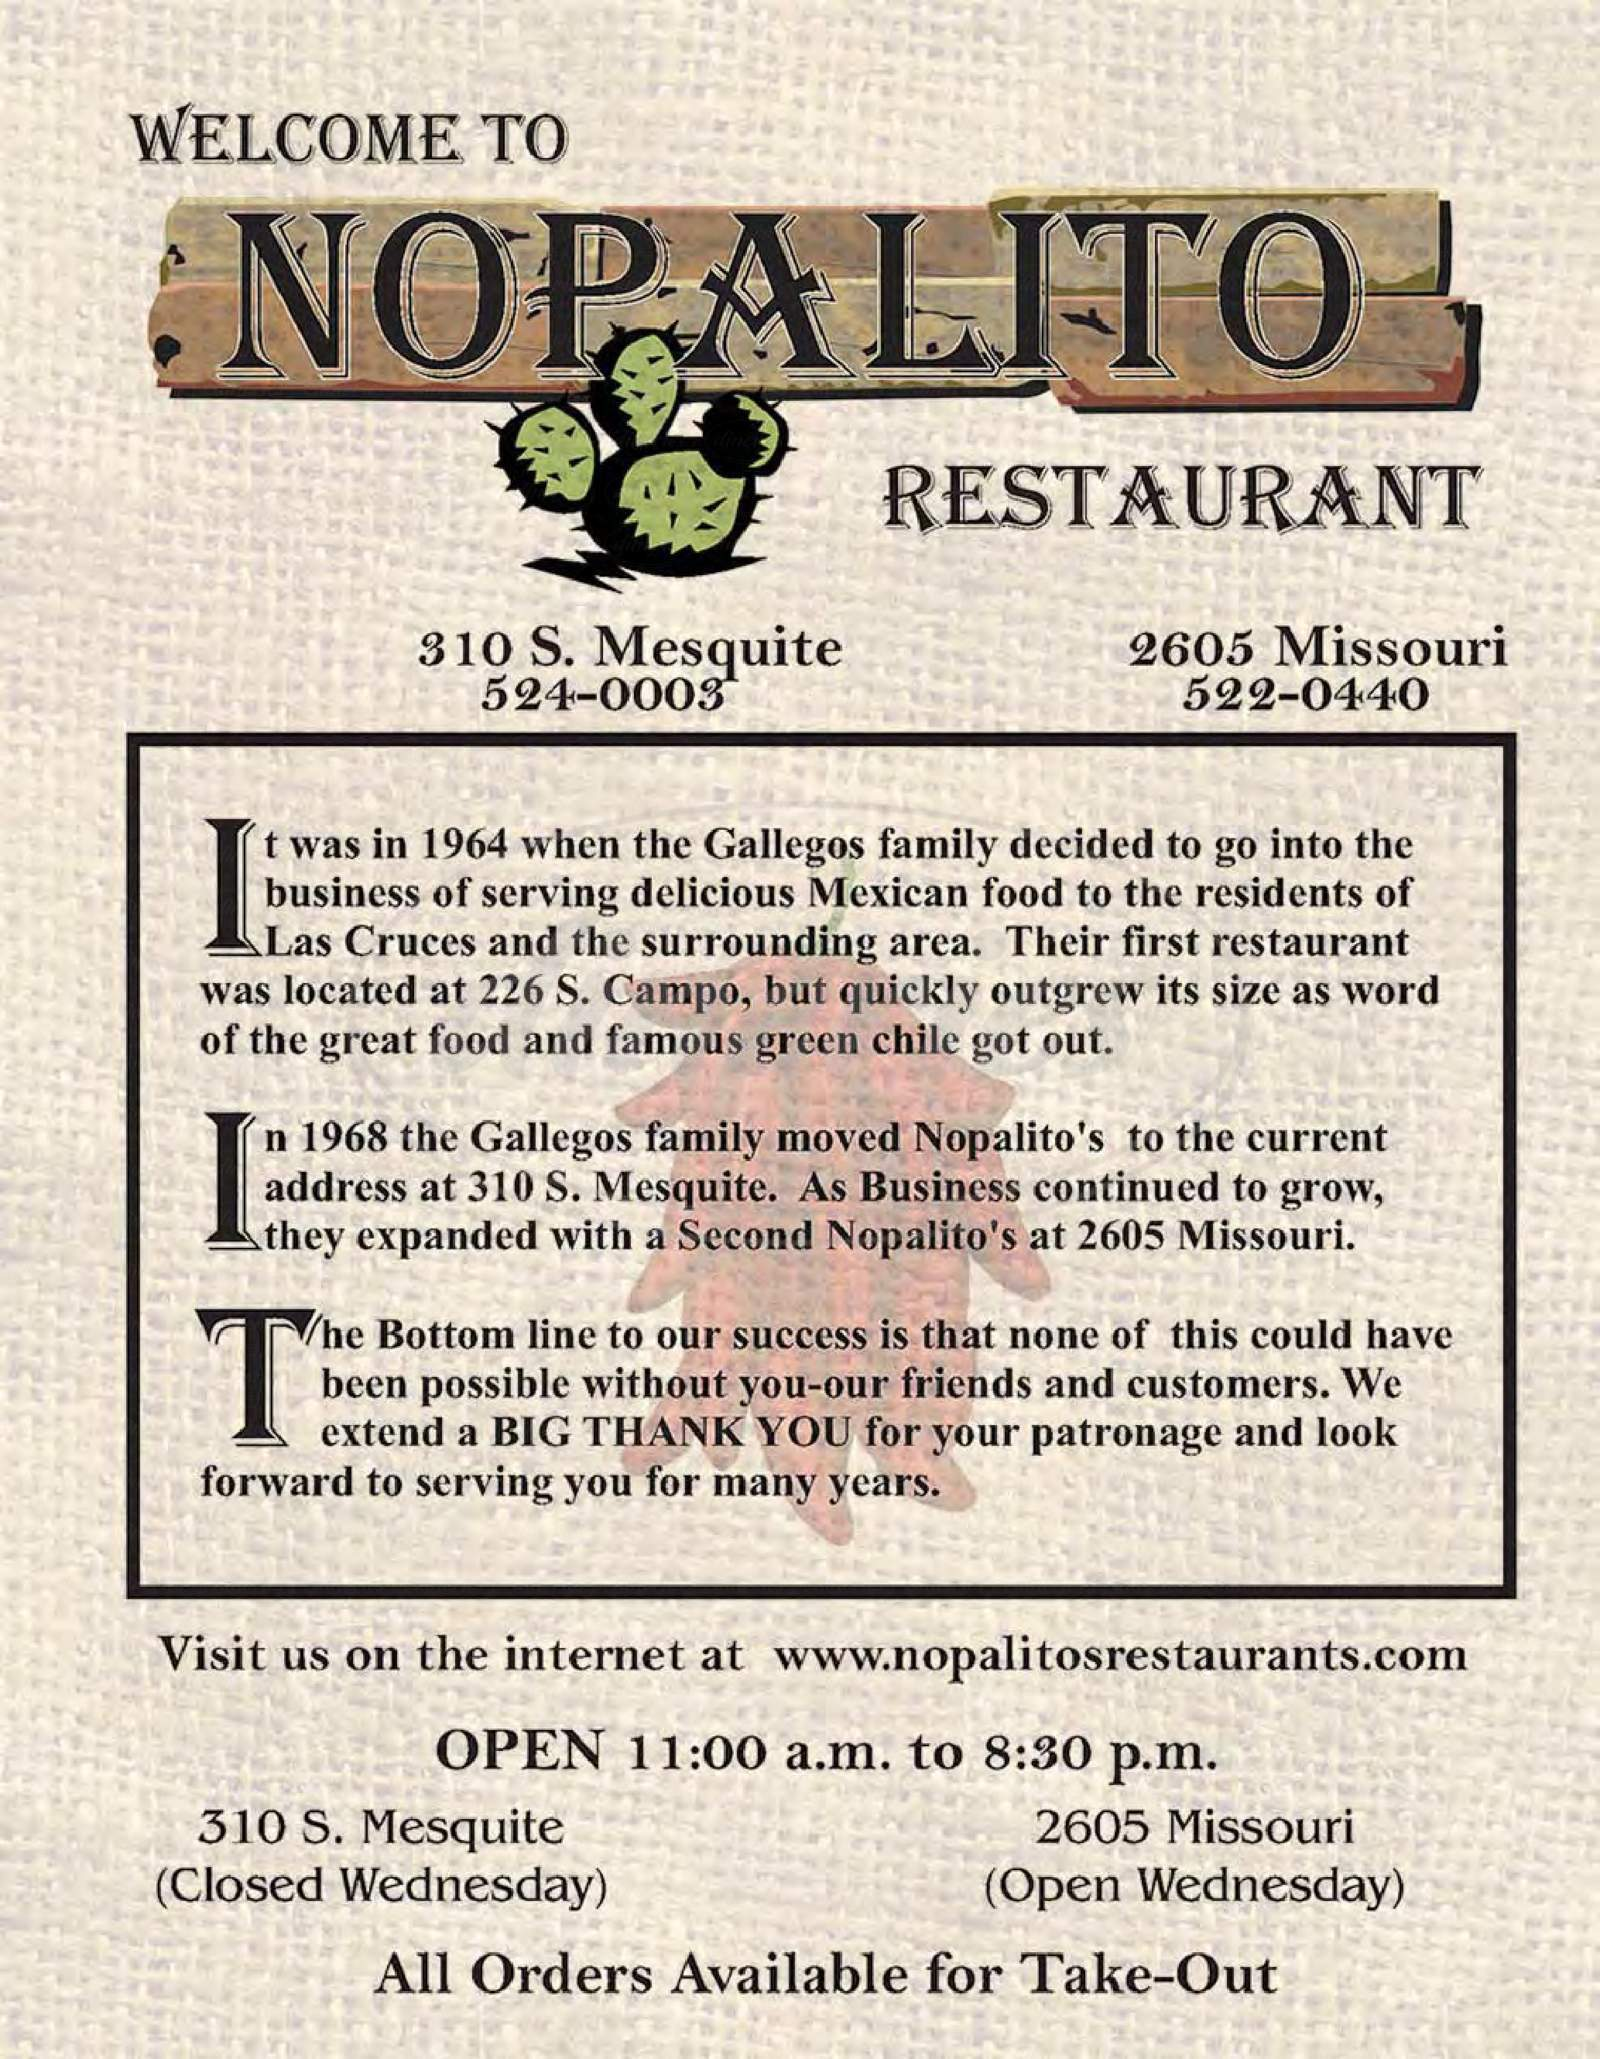 menu for Nopalito Restaurant